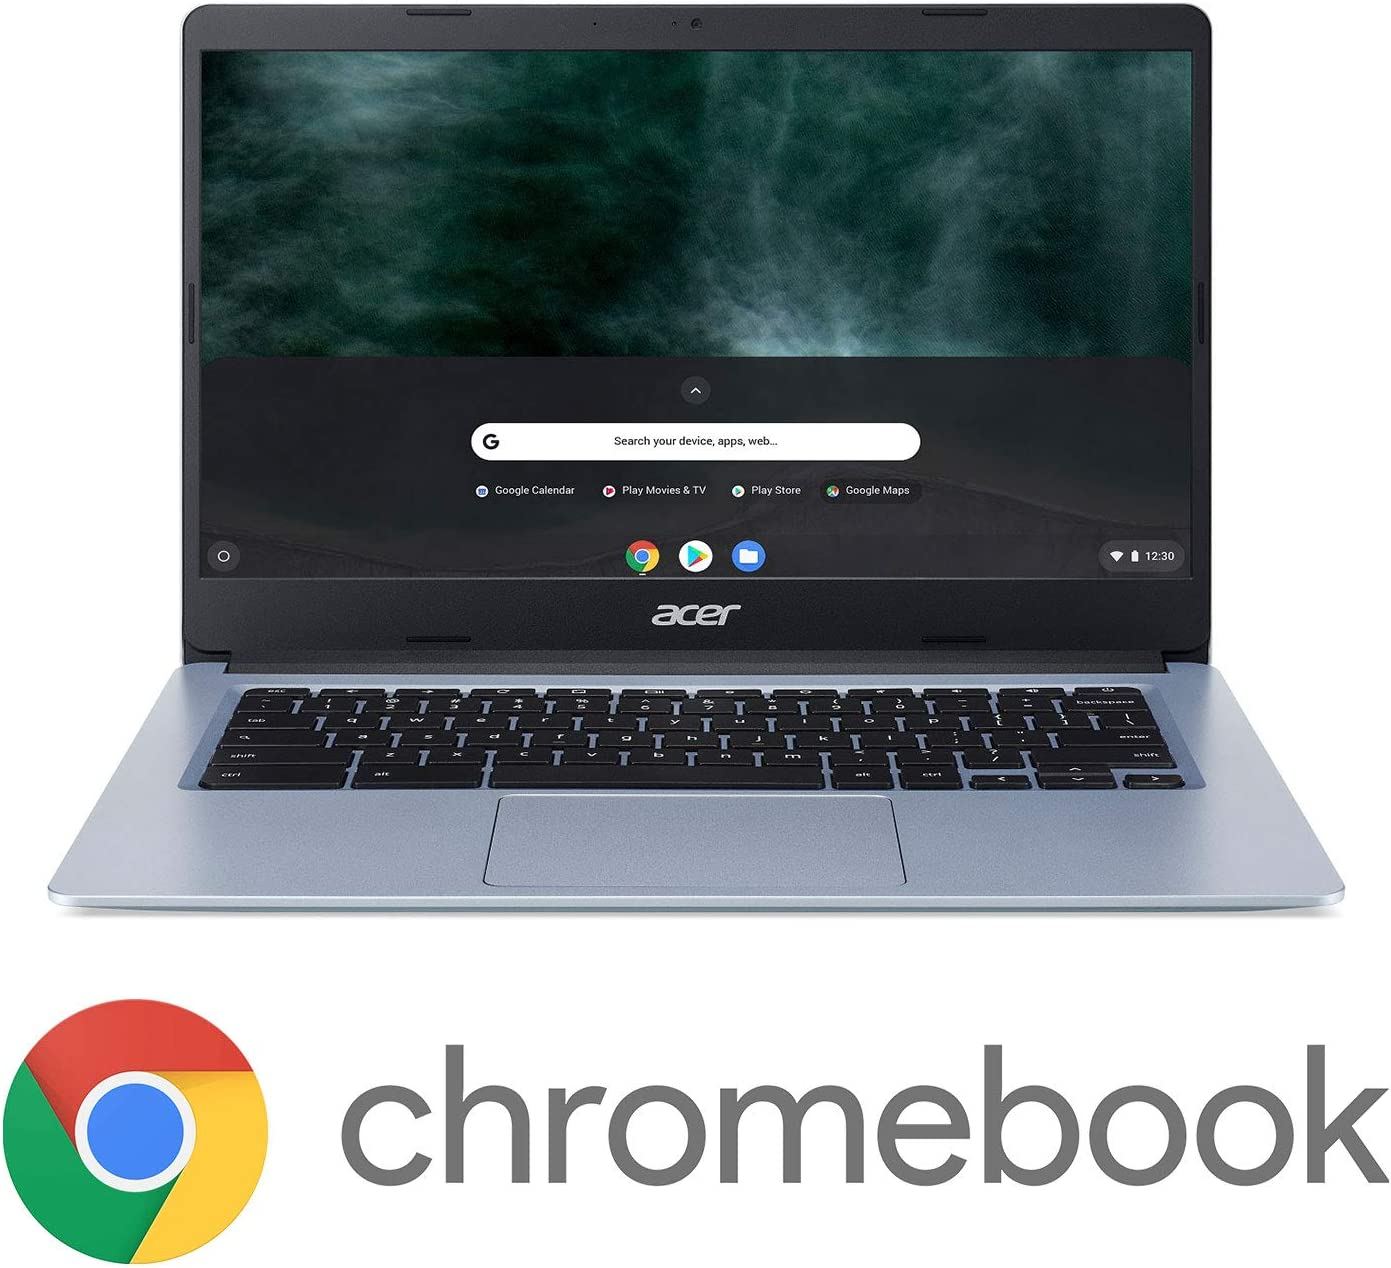 "Acer Chromebook 314, Intel Celeron N4000, 14"" HD Touch Display, 4GB LPDDR4, 64GB eMMC, Gigabit WiFi, Google Chrome, CB314-1HT-C7C0"